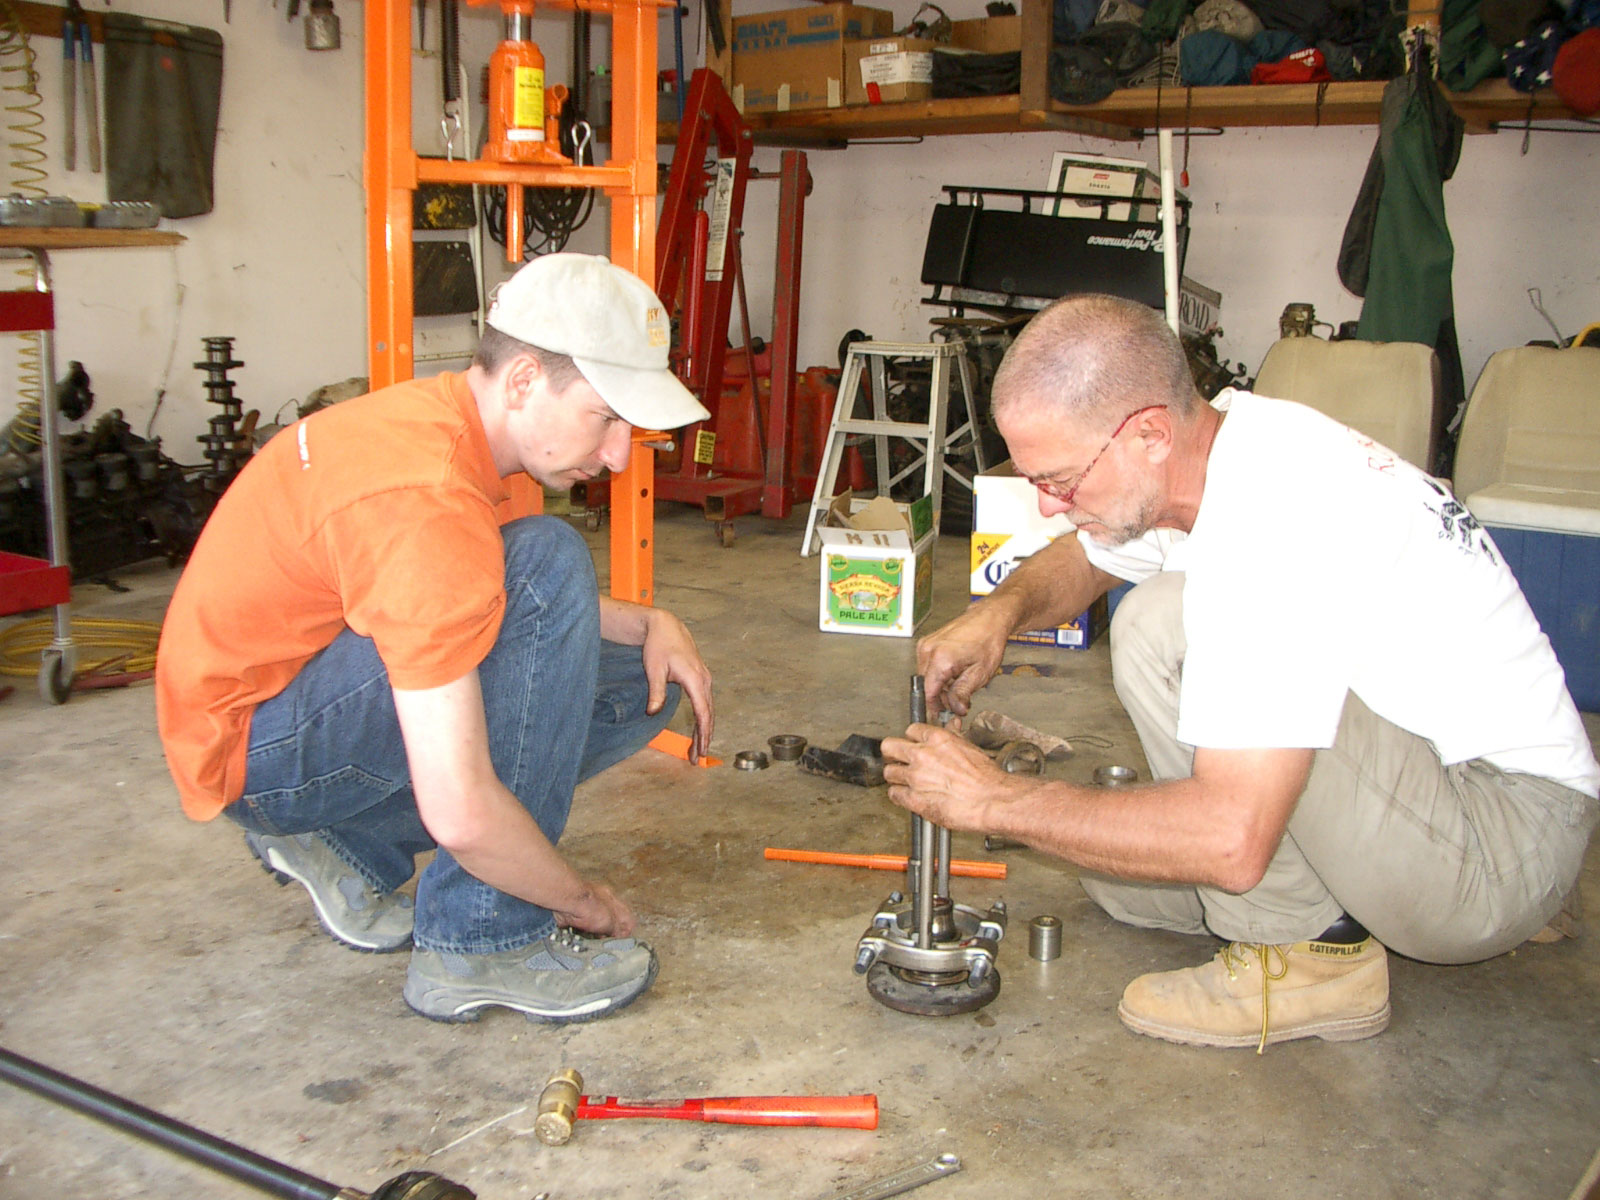 Bring your truck, camp for the weekend, rebuild an axle, or do a clutch job. Those jobs you fear most can be done with peer support, shared tools, and camaraderie.